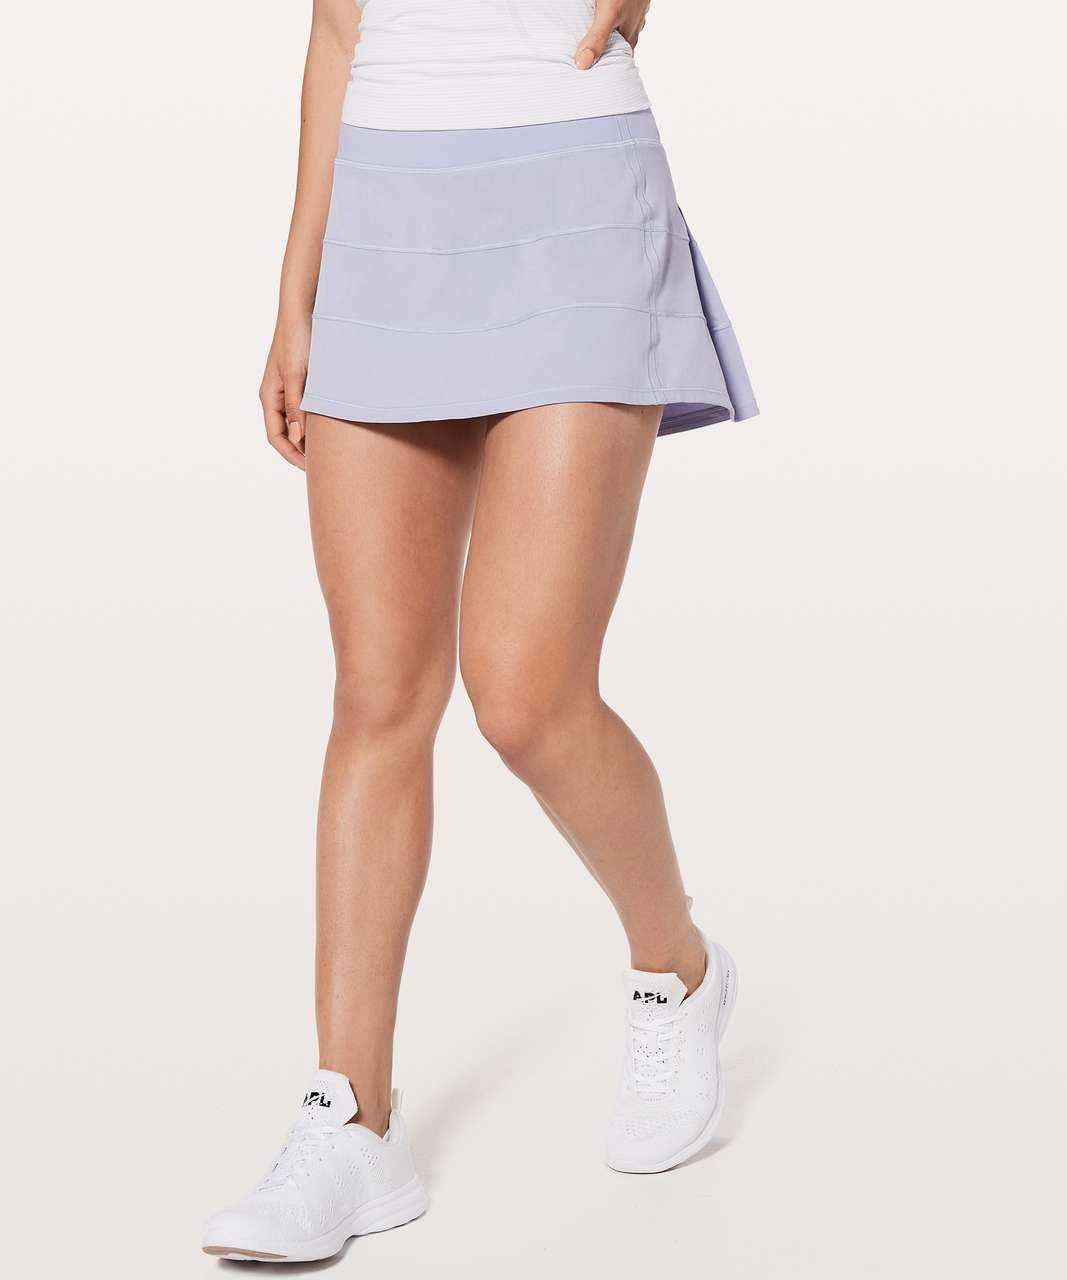 "Lululemon Pace Rival Skirt (Regular) *4-way Stretch 13"" - Berry Mist"